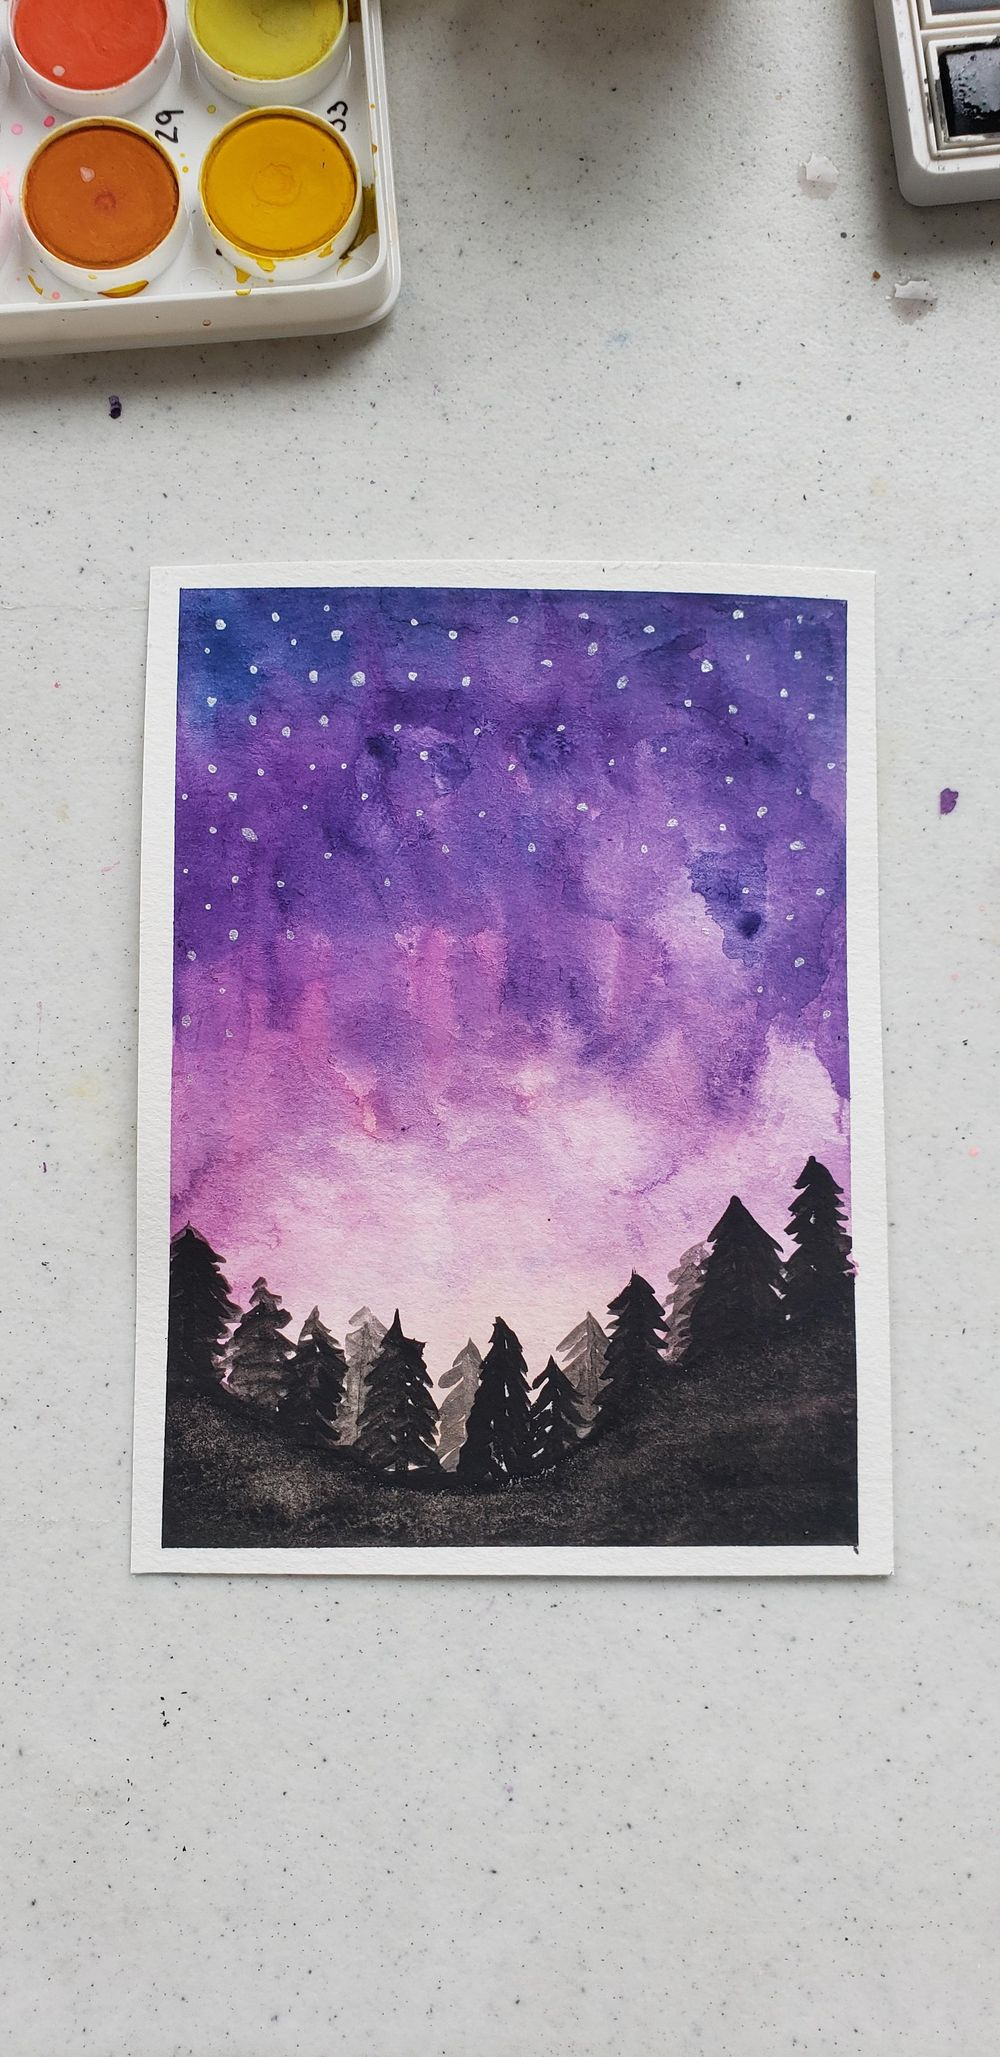 Watercolor backgrounds - image 2 - student project